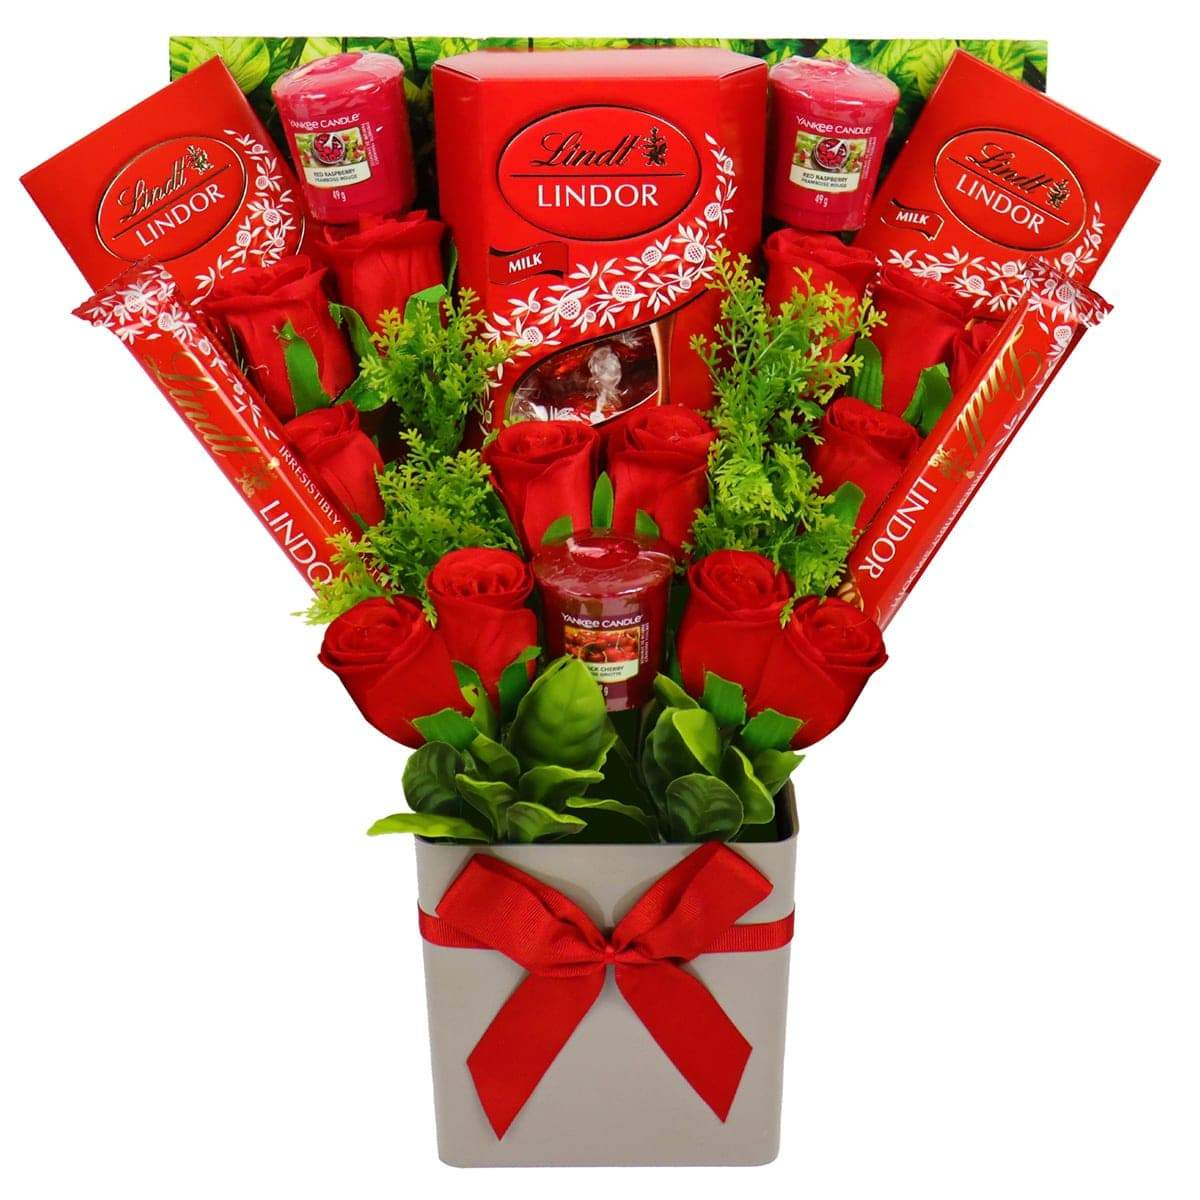 The Yankee Candle and Red Rose Bouquet